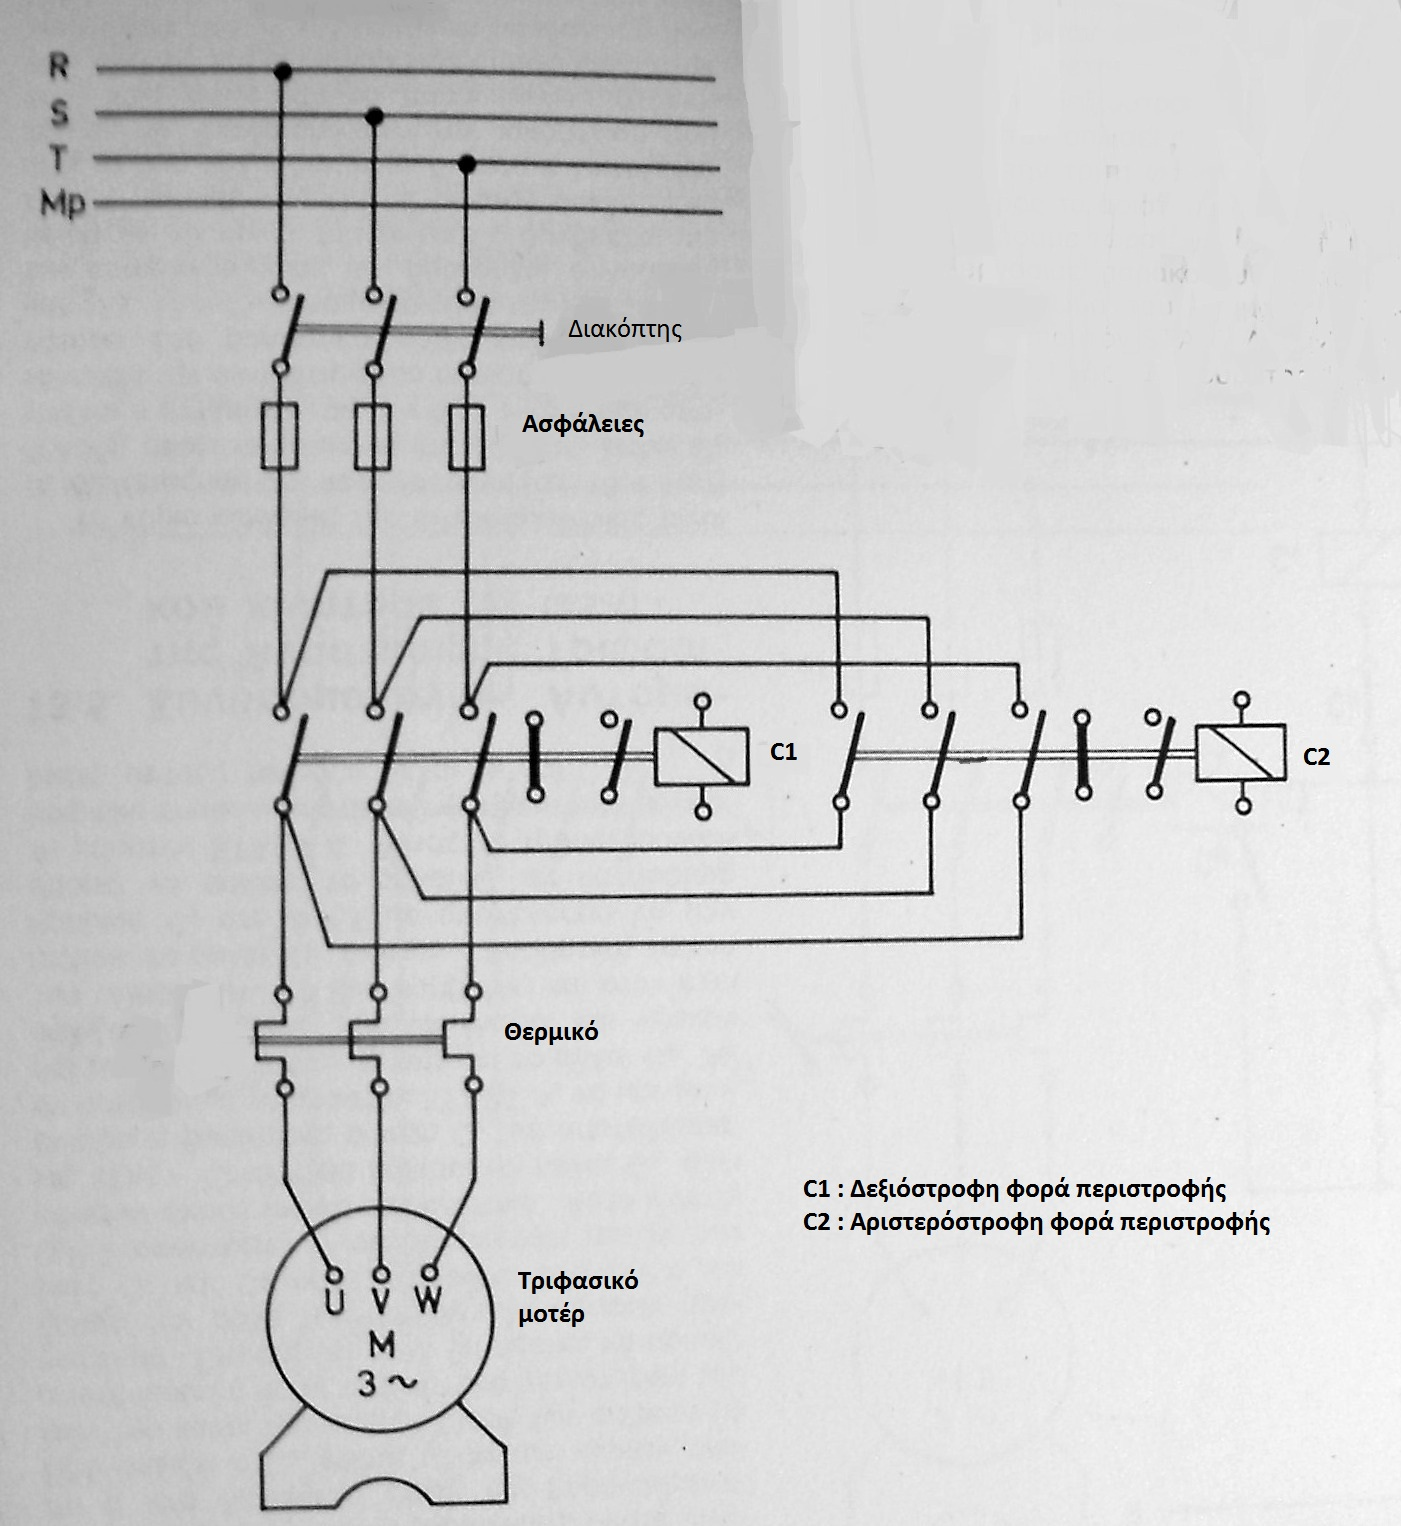 Uvw Electric Motor Wiring Diagram Detailed Schematics Three Phase U V W Modern Connection Photo Electrical And